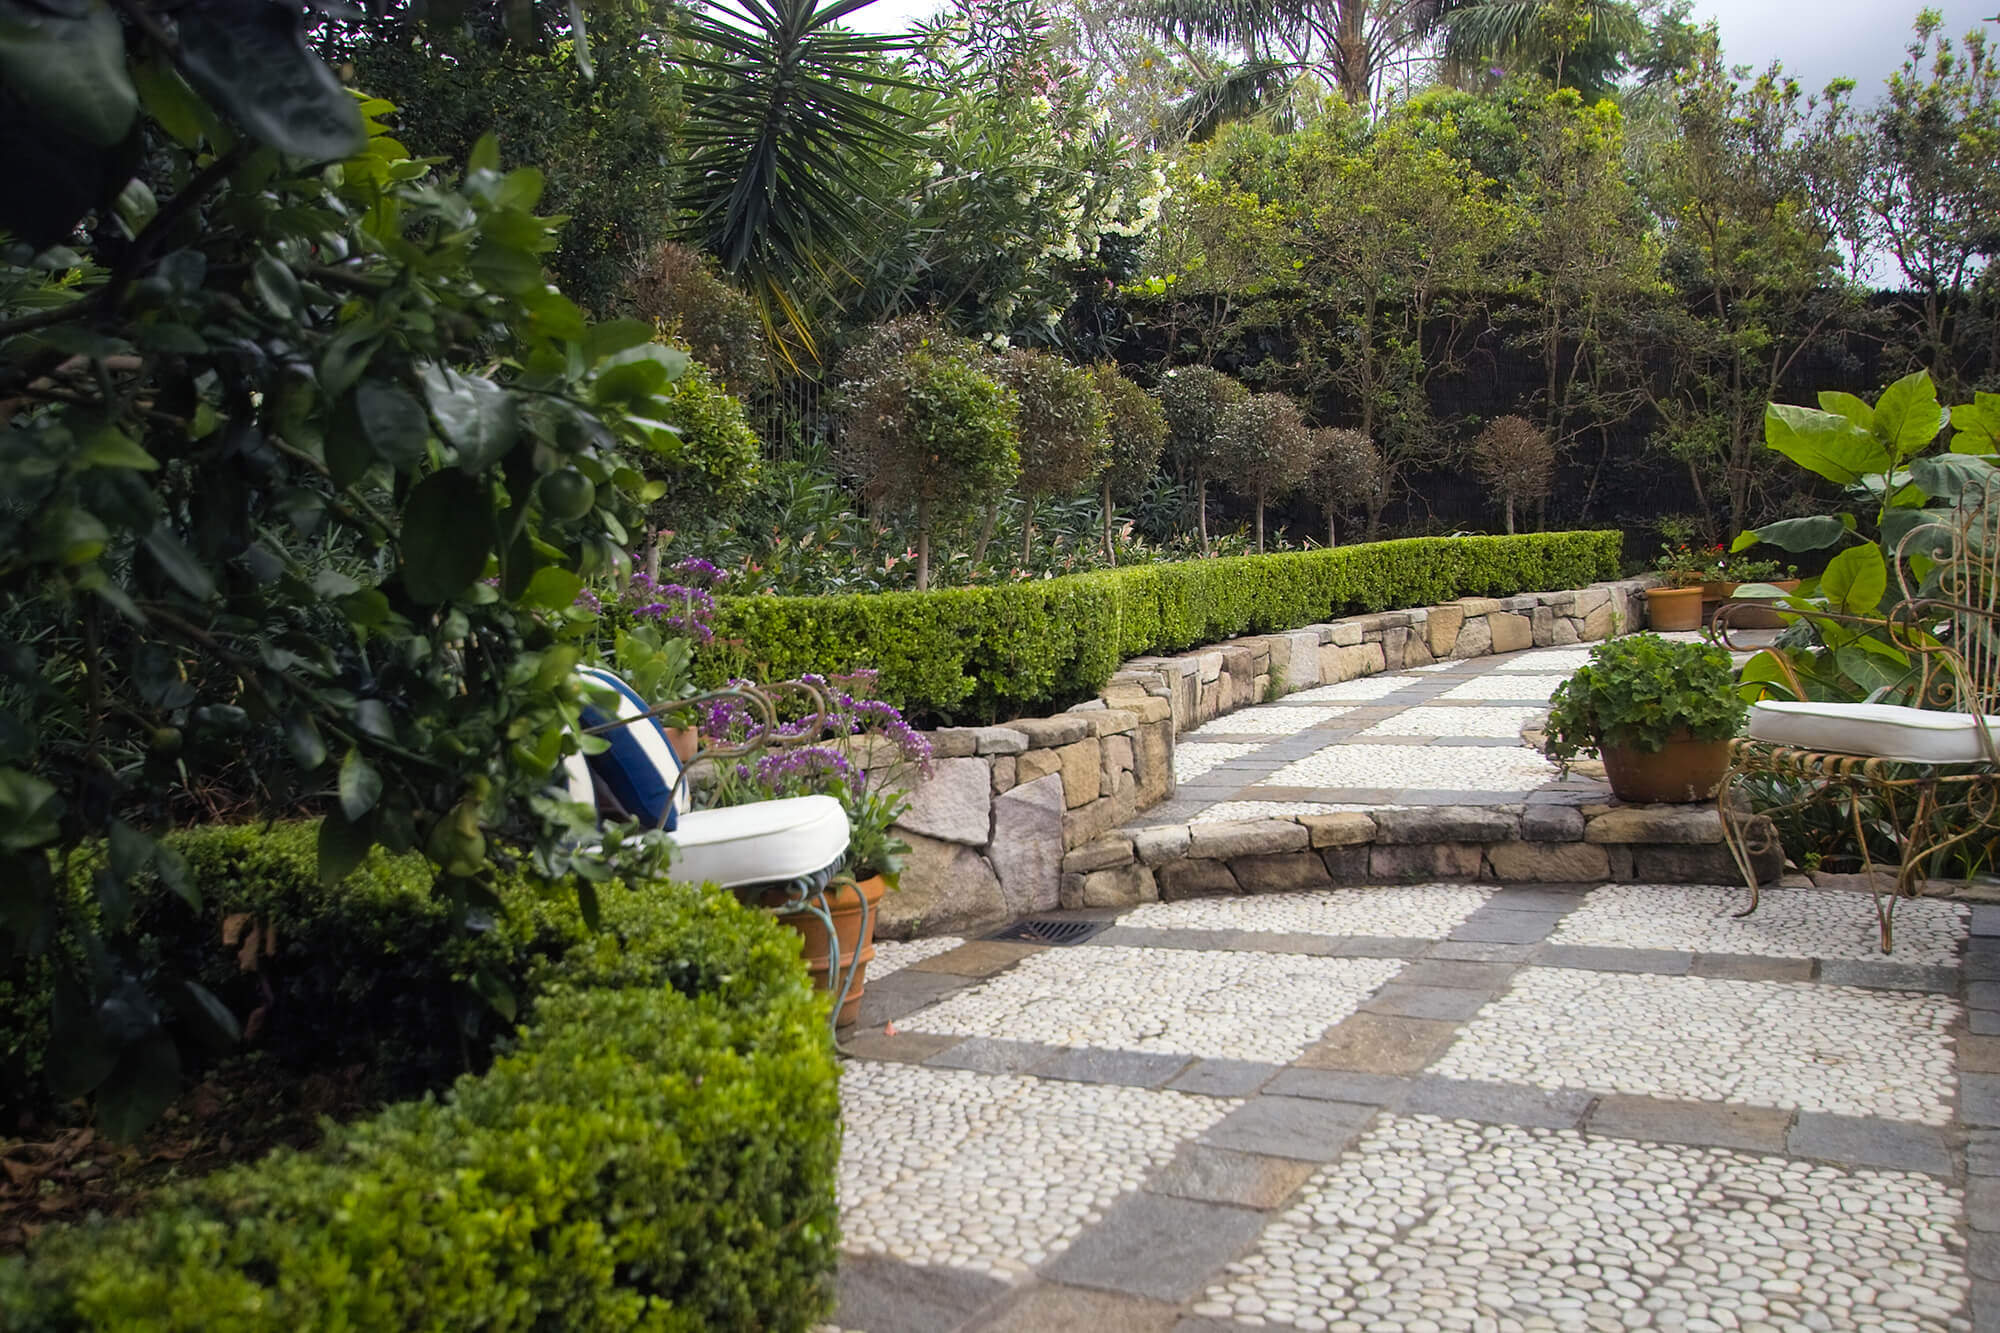 French provincial gardens indooroopilly boss gardenscapes for Backyard patio landscaping